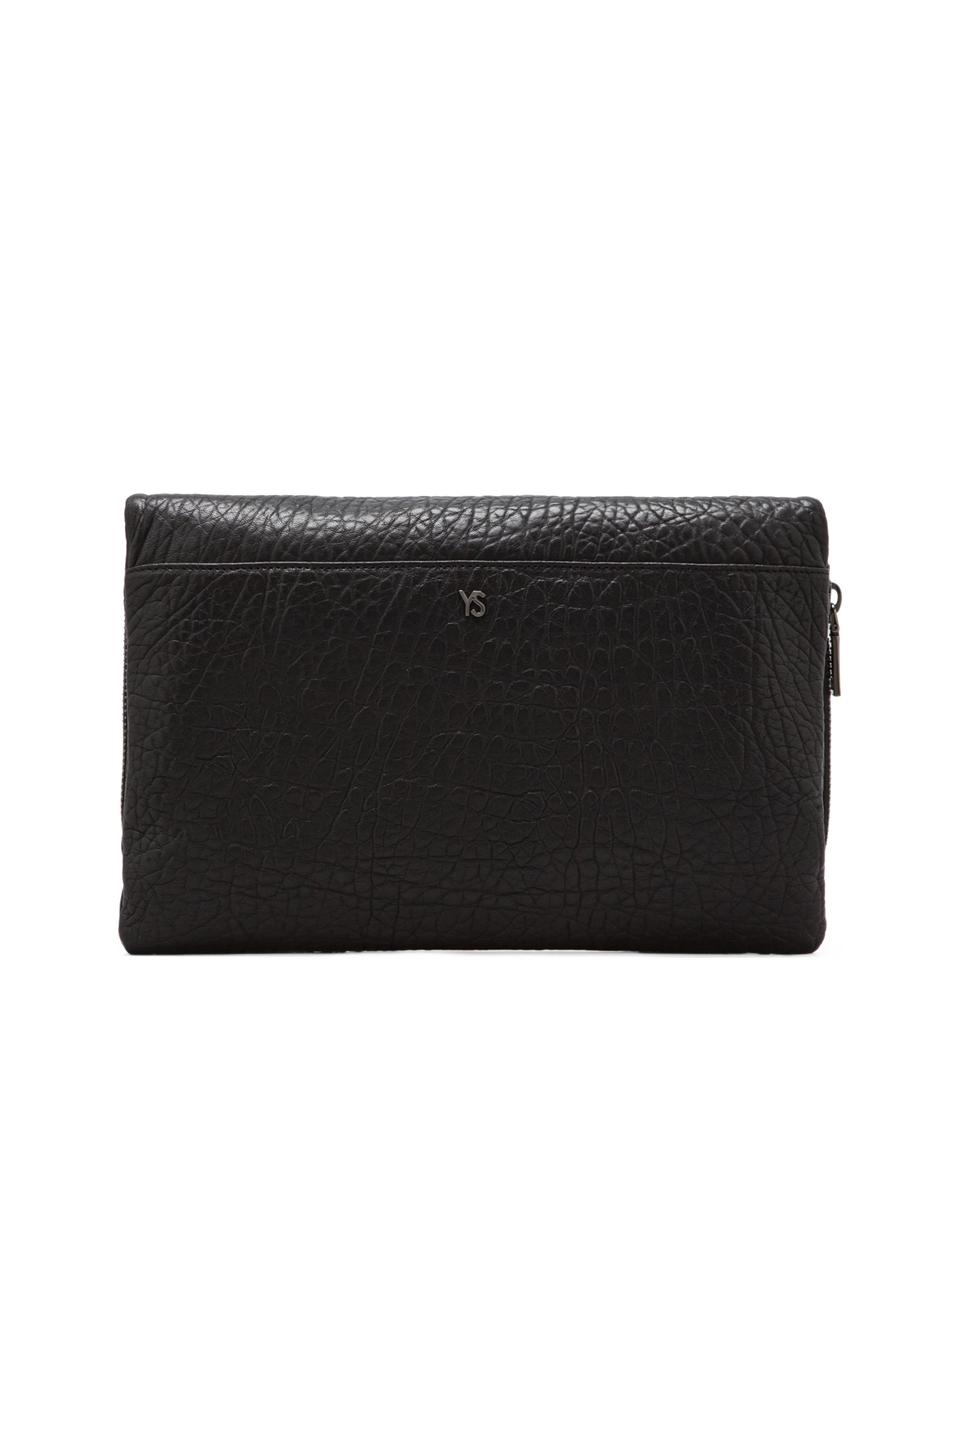 Yosi Samra Blair Studded Foldover Clutch in Black from REVOLVEclothing.com